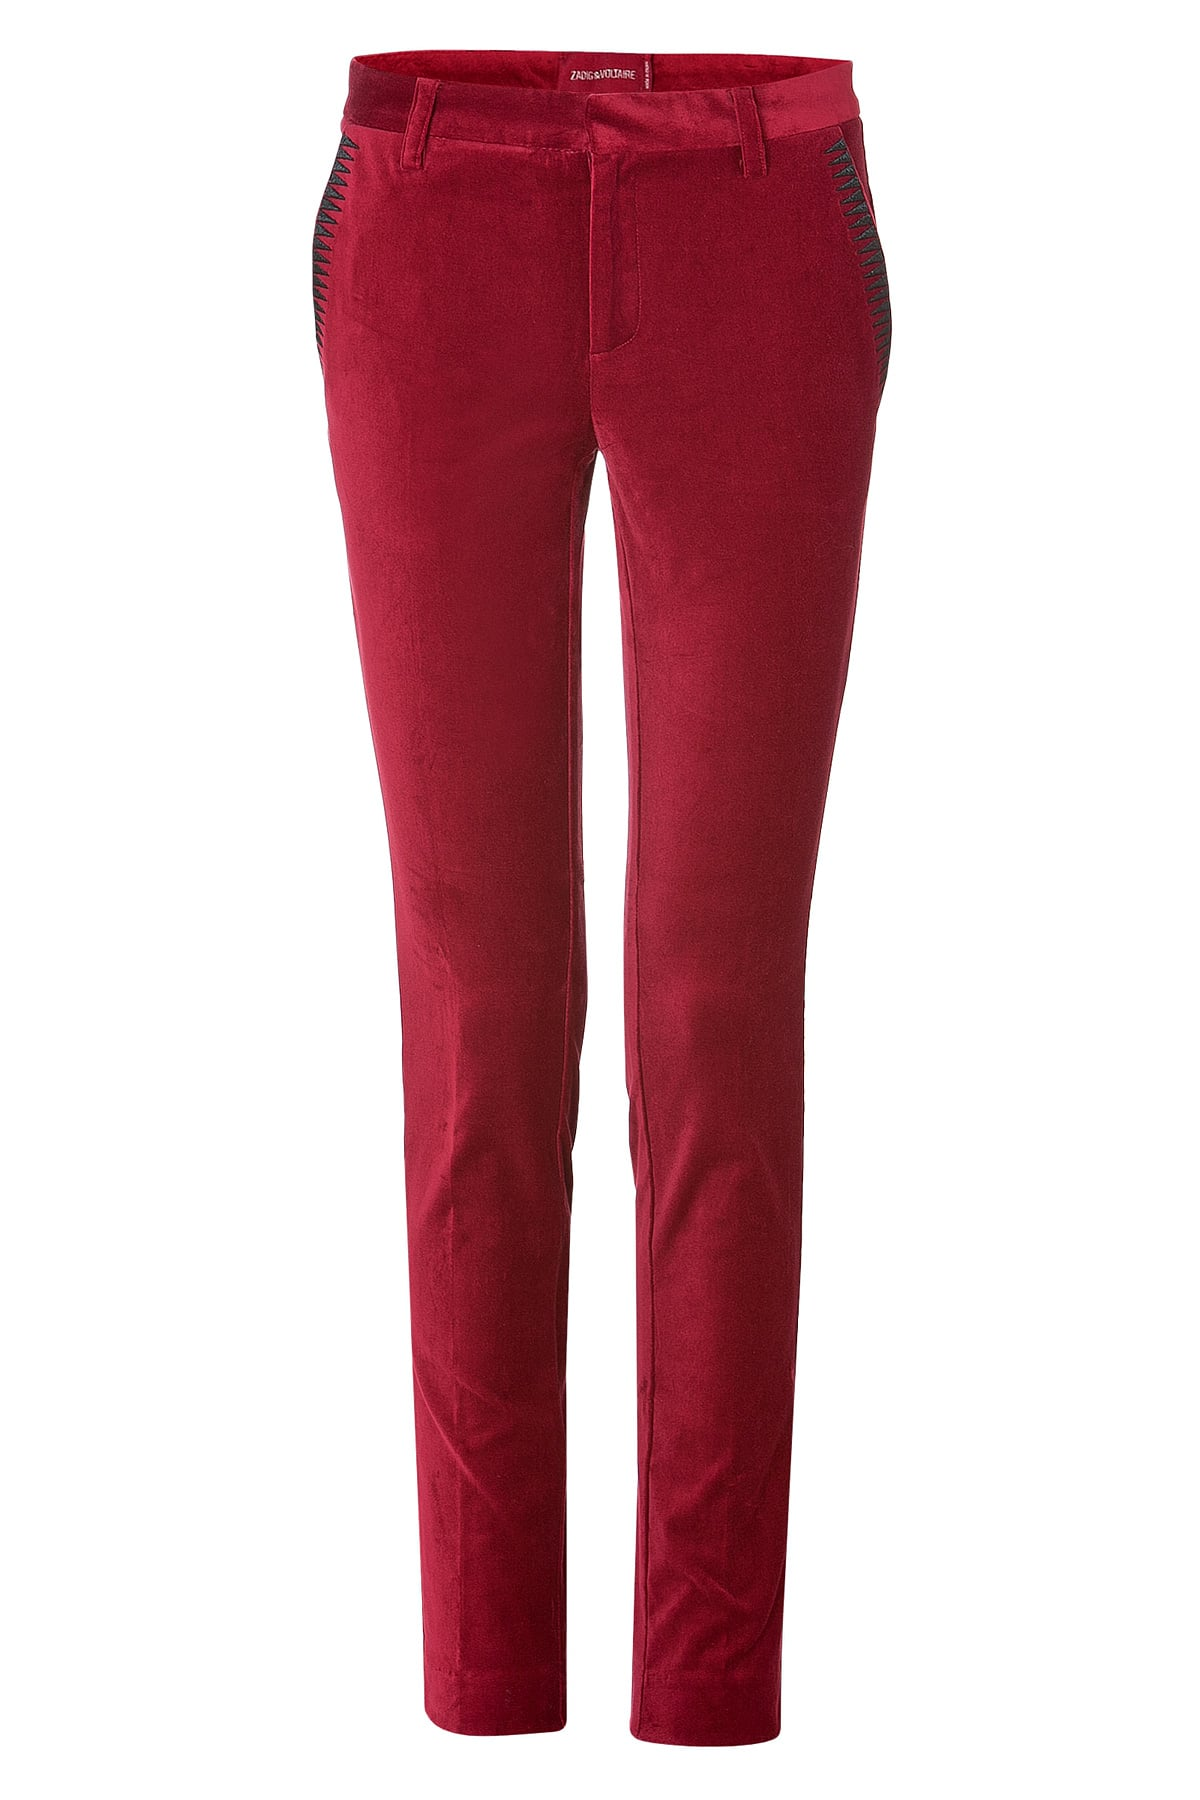 Zadig Voltaire Red Velvet Pants 206 Originally 295 Olivia Palermo S Outfit Shouldn T Work But It Does Popsugar Fashion Photo 4